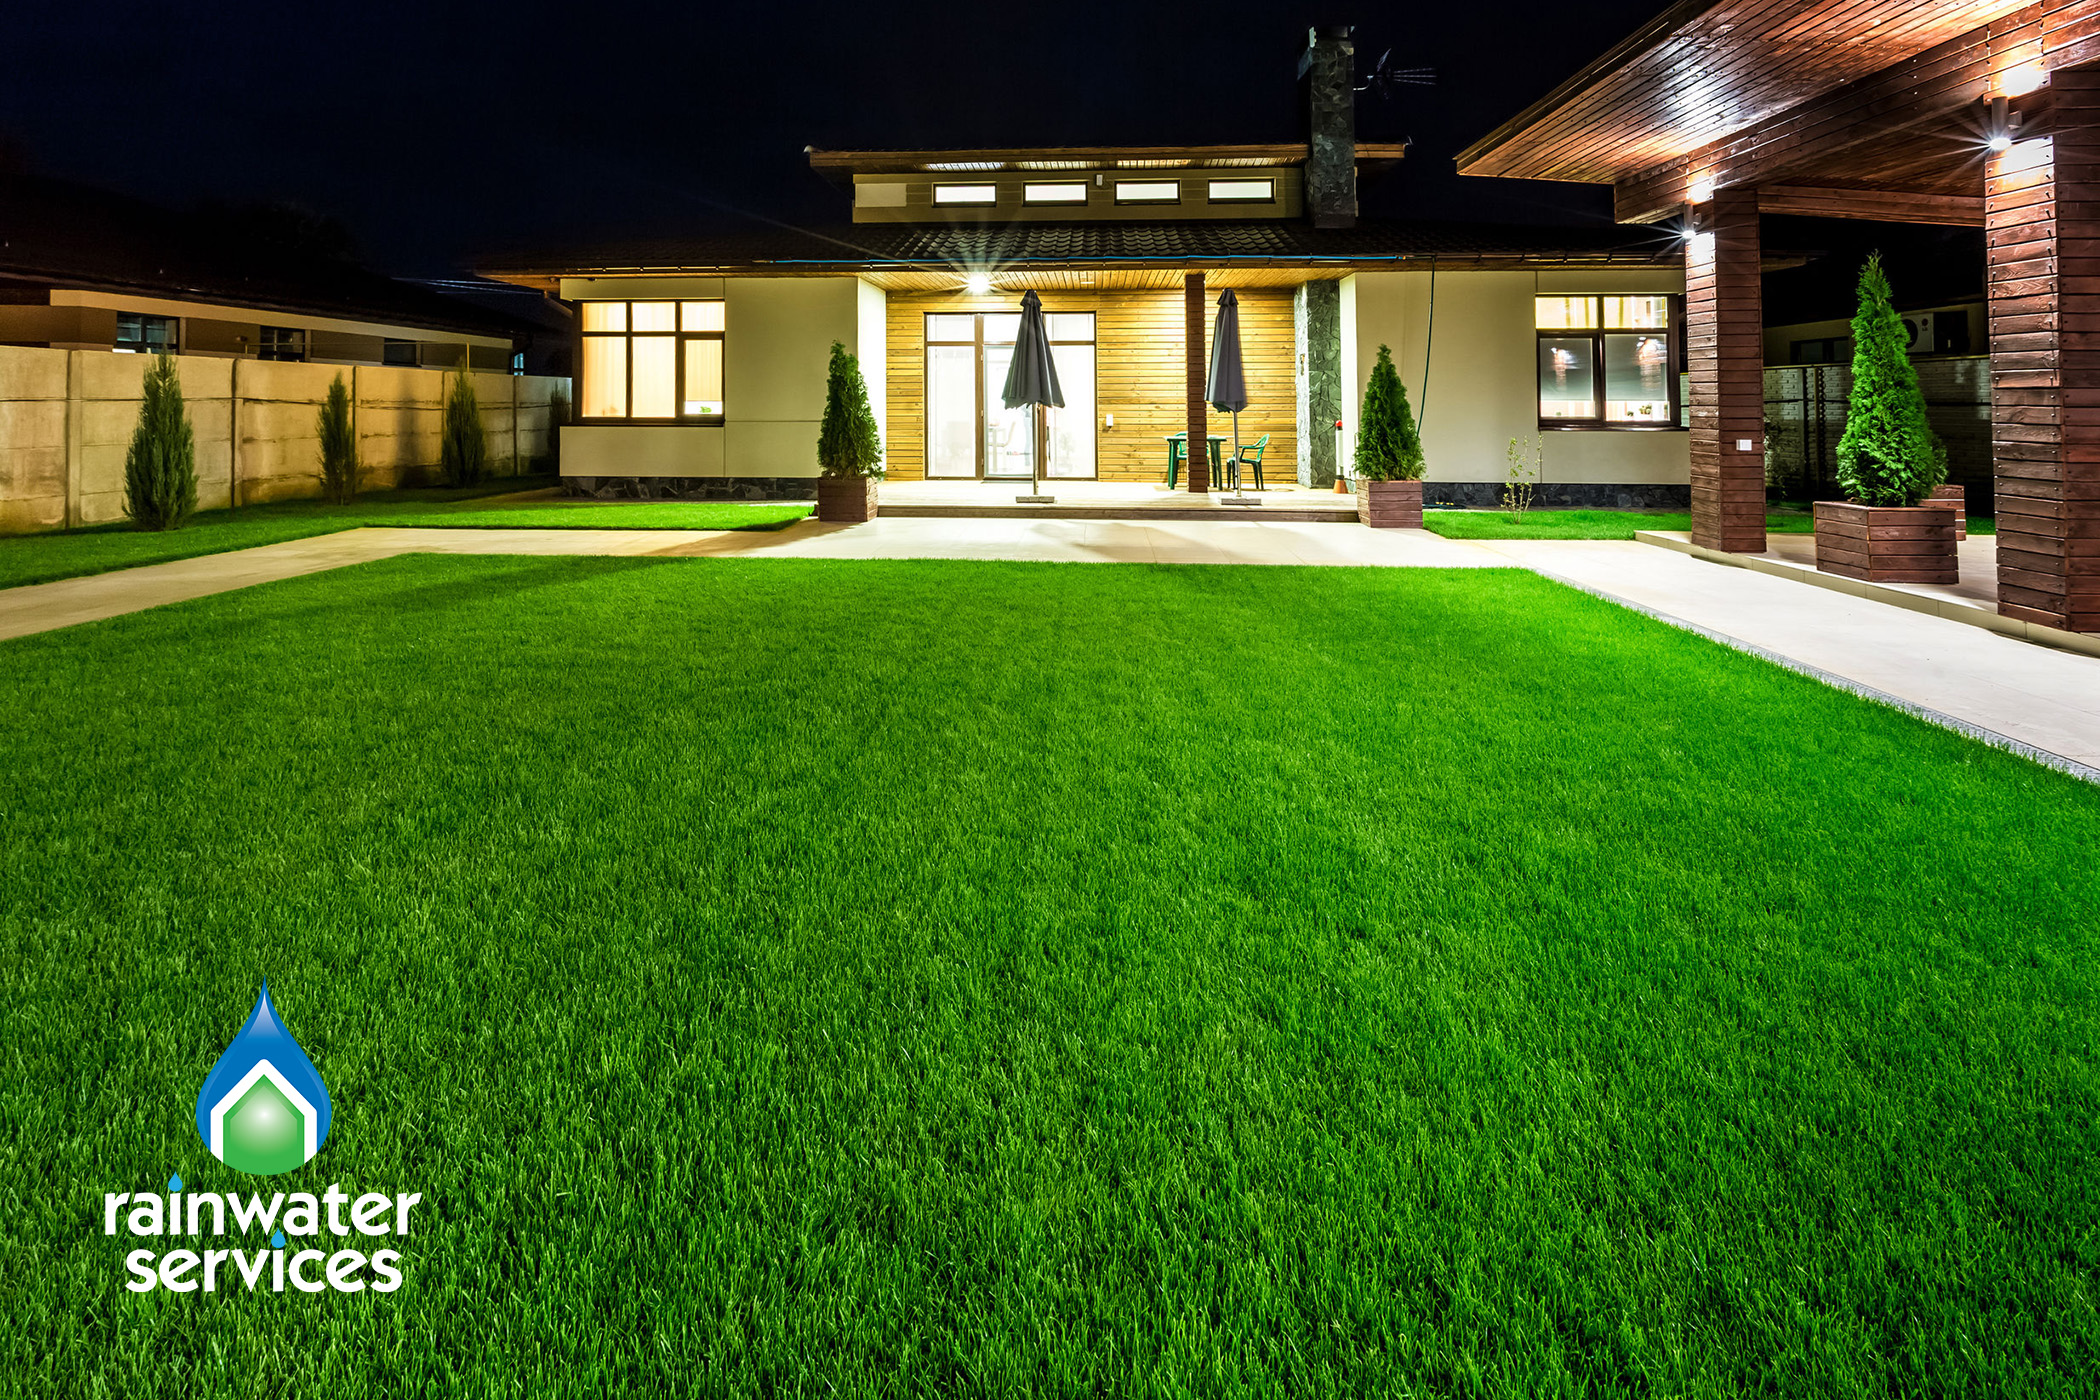 Rainwater services healthy lawn irrigation system